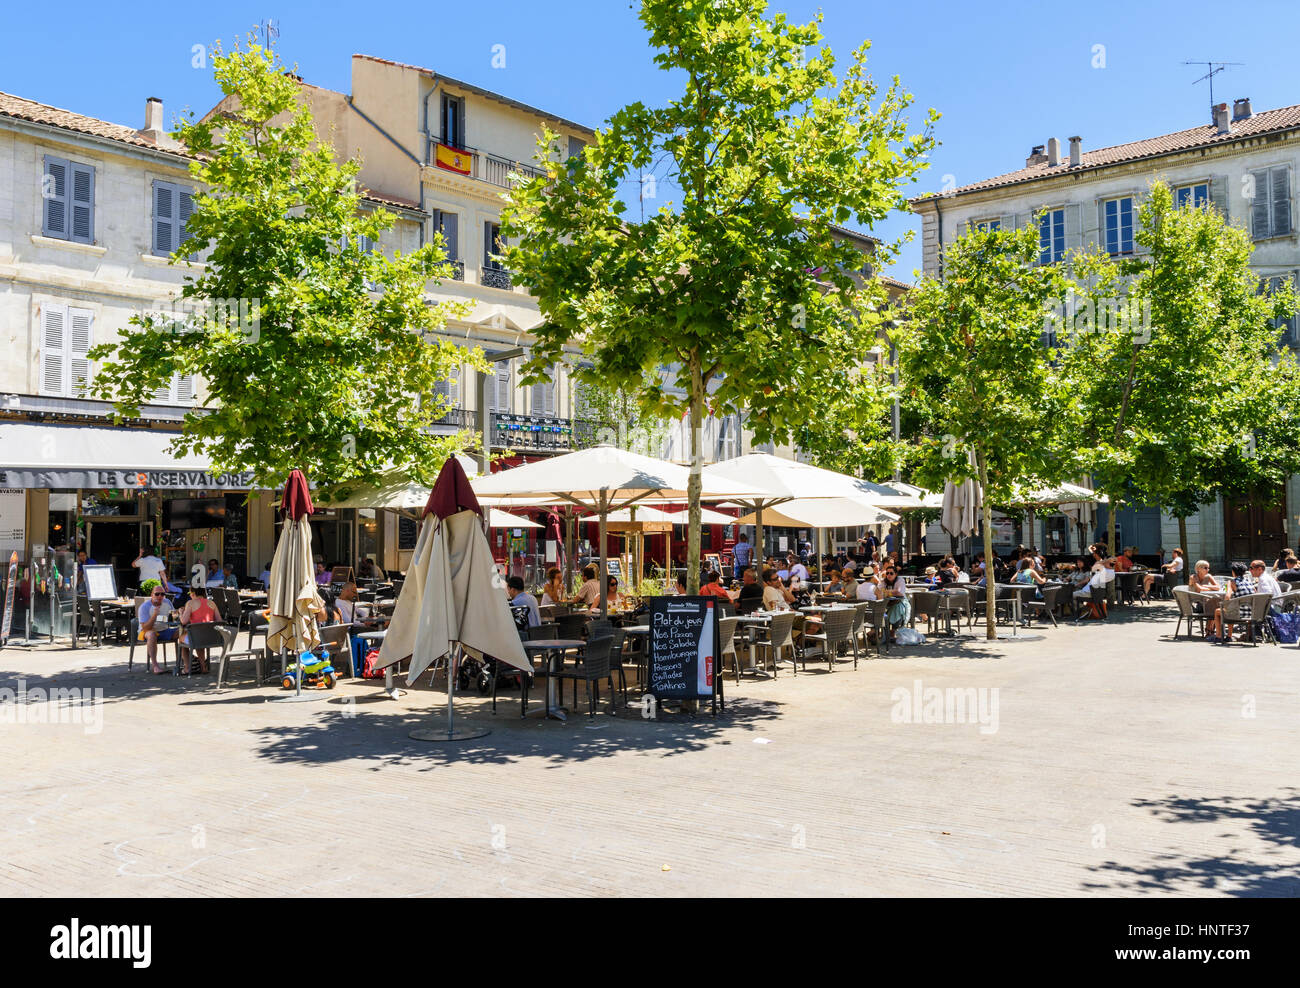 People seated at cafes and restaurants in Place Pie, Avignon, France - Stock Image